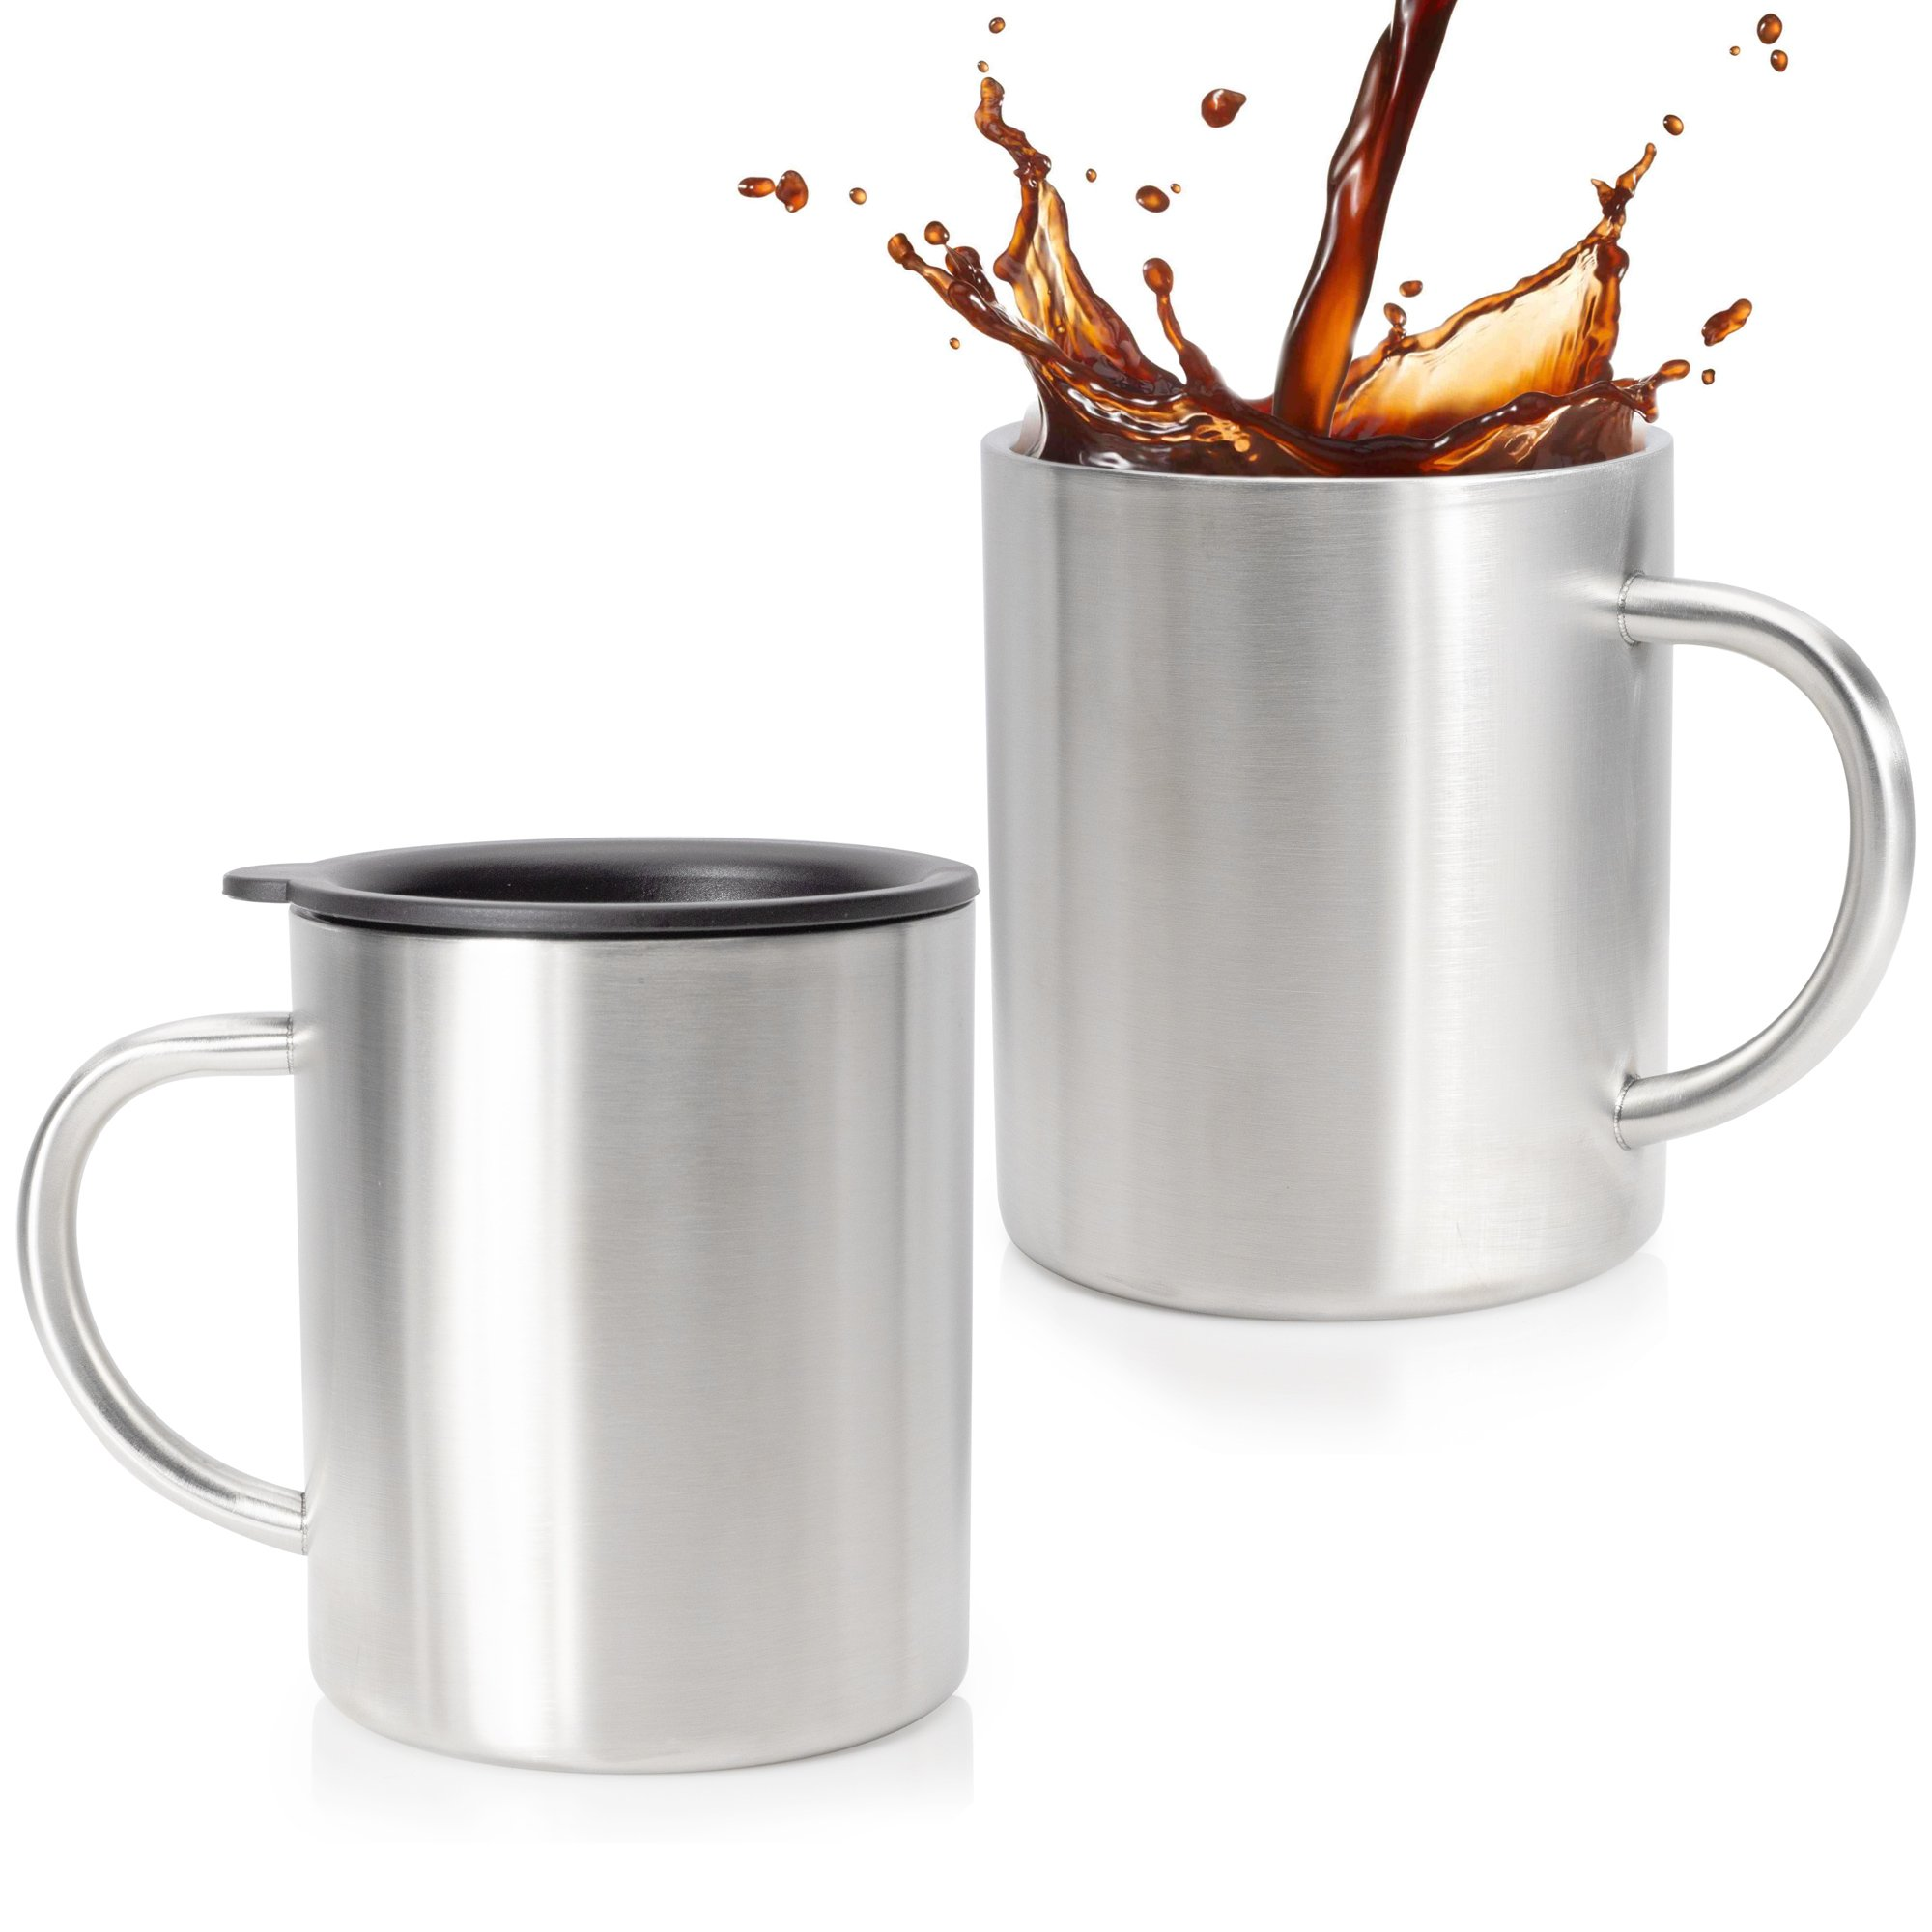 Stainless Steel Coffee Mug Set Of 2 - Double Wall Insulated Coffee Mug With Lid - 14 Oz Stainless Steel Coffee Cups - Perfect For Hot & Cold Drinks